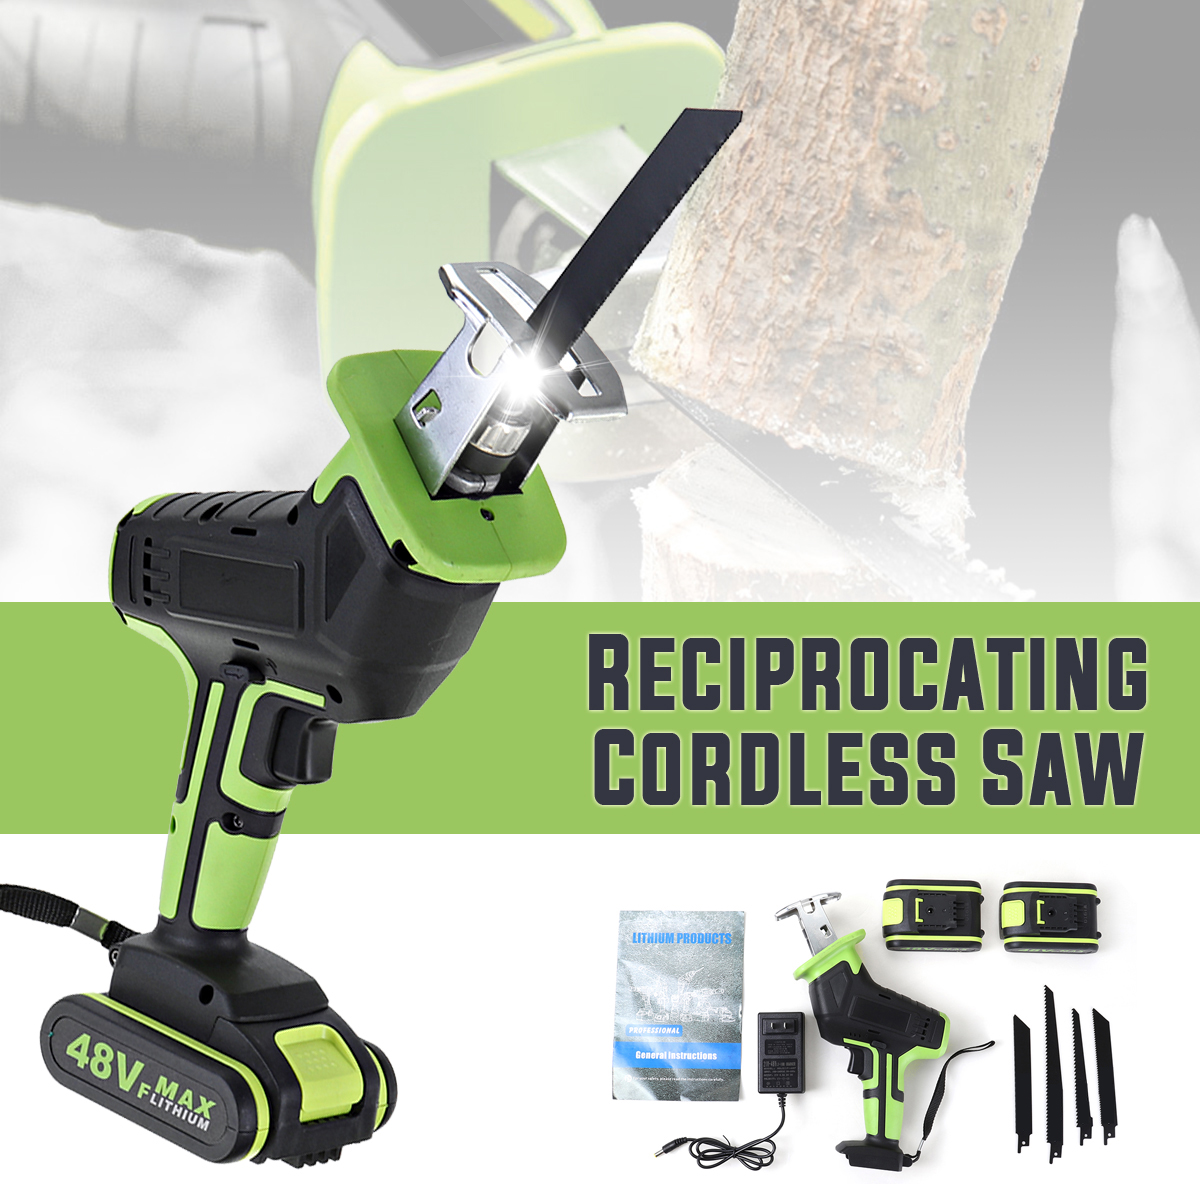 Drillpro 48V Cordless Reciprocating Saw   4 Saw Blades Metal Cutting Wood Tool Portable Woodworking Cutters with 1 2 Batterys